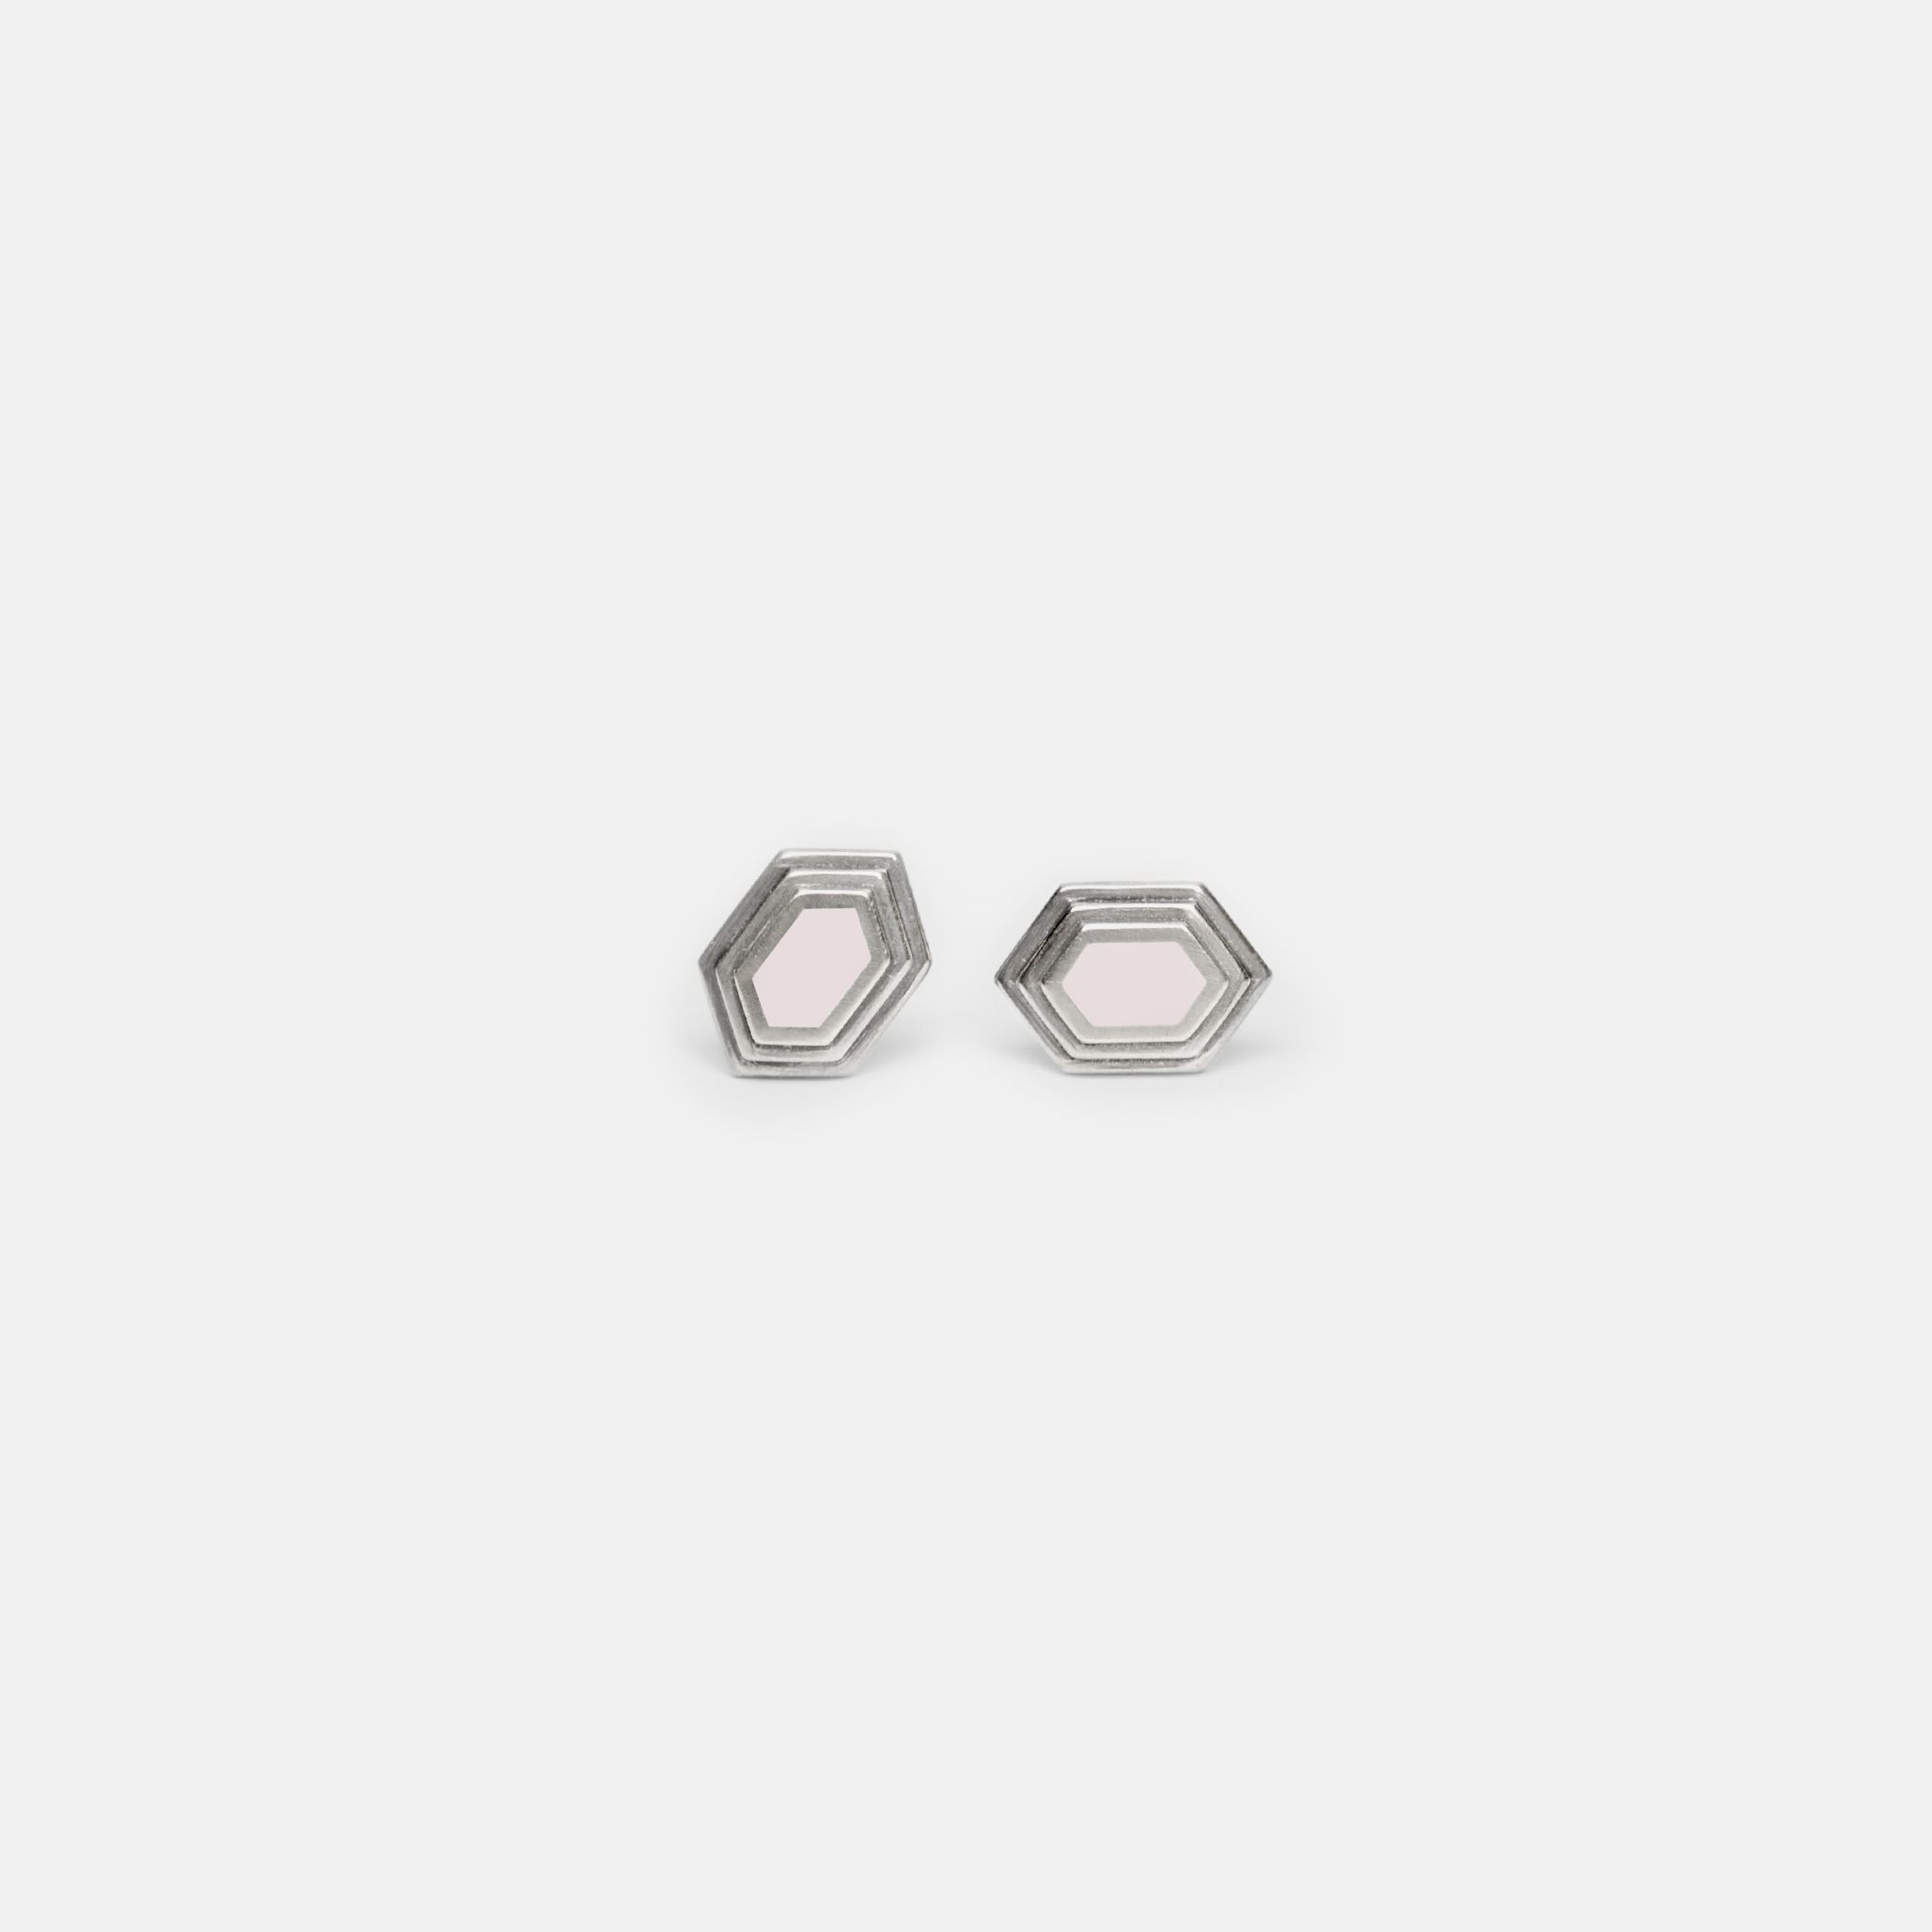 Off_White_Marisa_Lomonaco_Stepped_Stud_Earring_0005_Silver_Baby_Pink.jpg